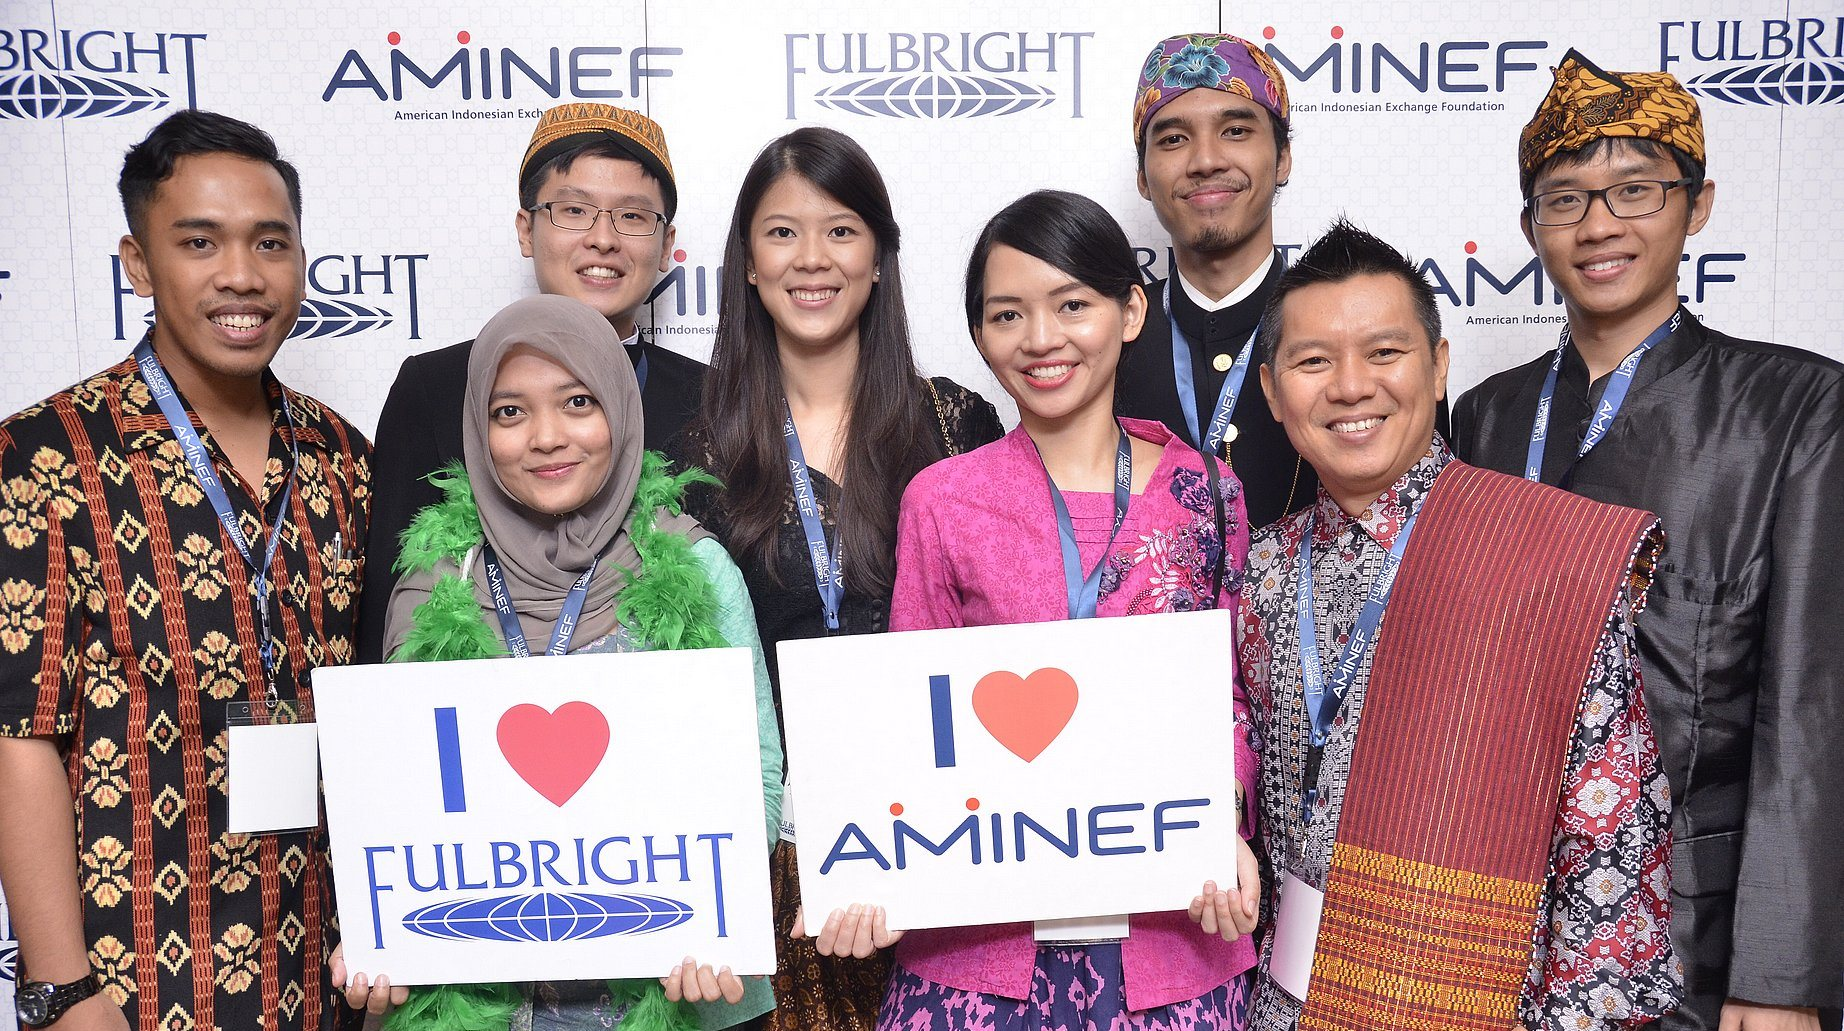 01_11-fulbright-day